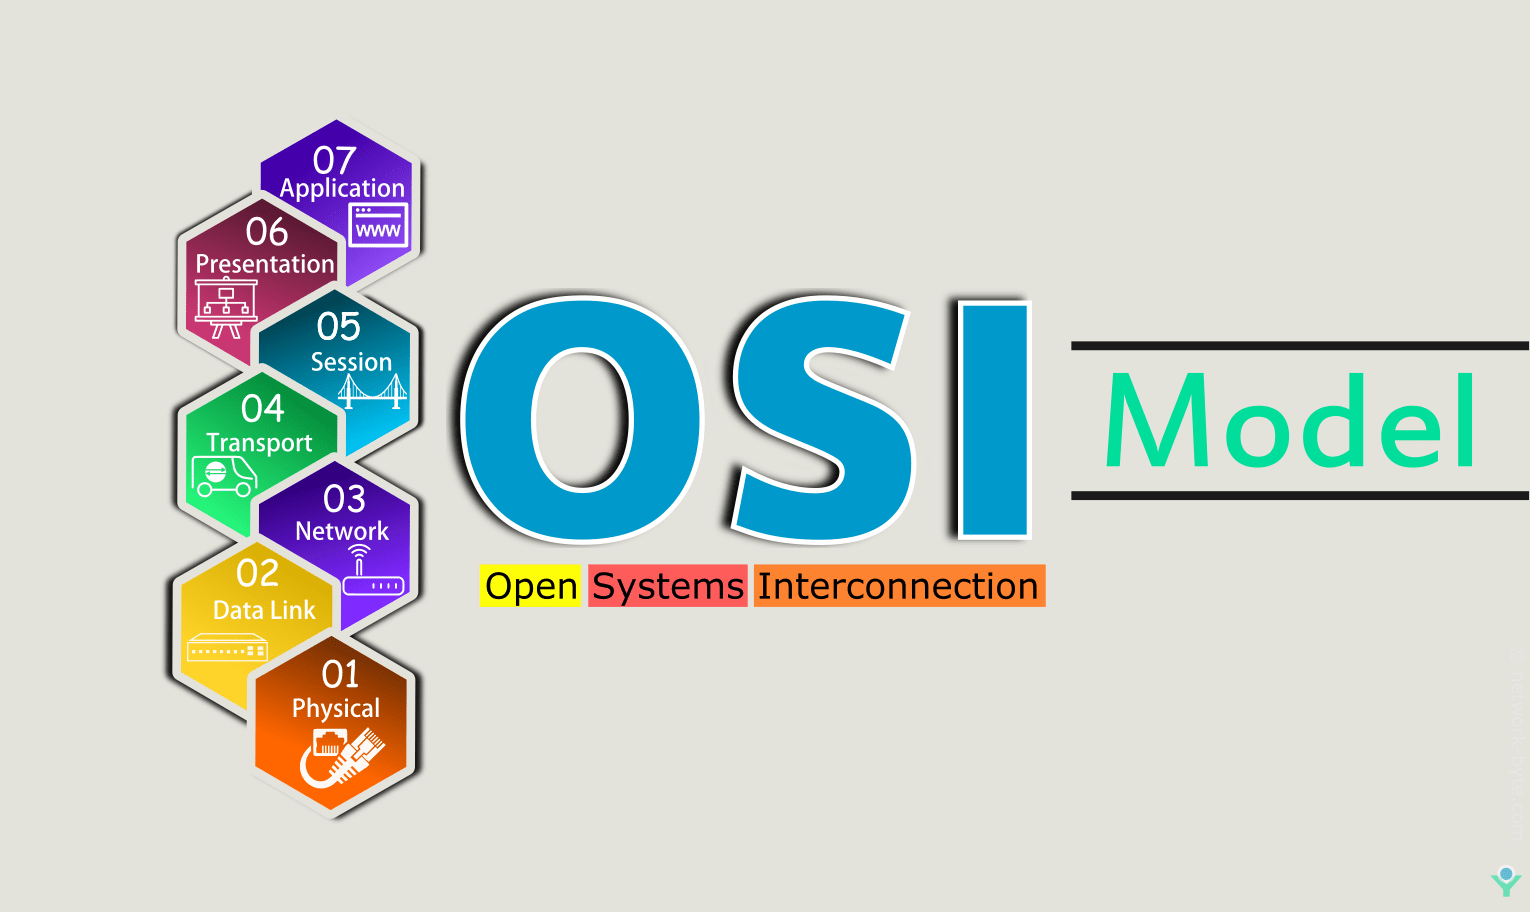 """OSI Model- A 7 Layers Architecture <span class=""""bsf-rt-reading-time""""><span class=""""bsf-rt-display-label"""" prefix=""""Reading Time""""></span> <span class=""""bsf-rt-display-time"""" reading_time=""""10""""></span> <span class=""""bsf-rt-display-postfix"""" postfix=""""mins""""></span></span><!-- .bsf-rt-reading-time -->"""